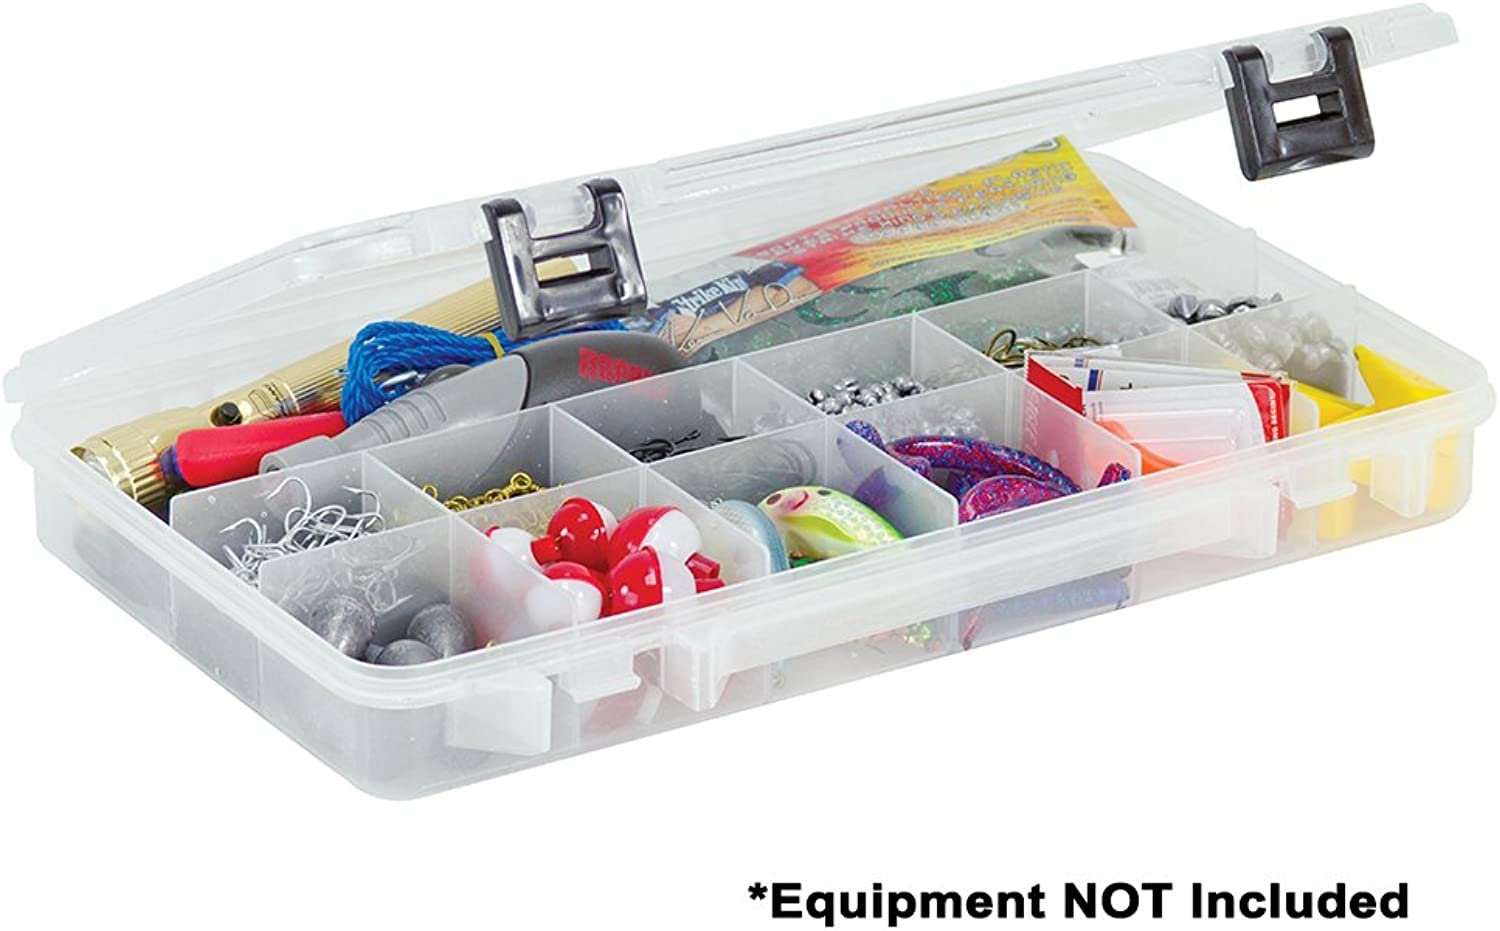 Plano 2371304 ProLatch 3700 Size Stowaway Boxes with 13 Fixed Compartments, Clear